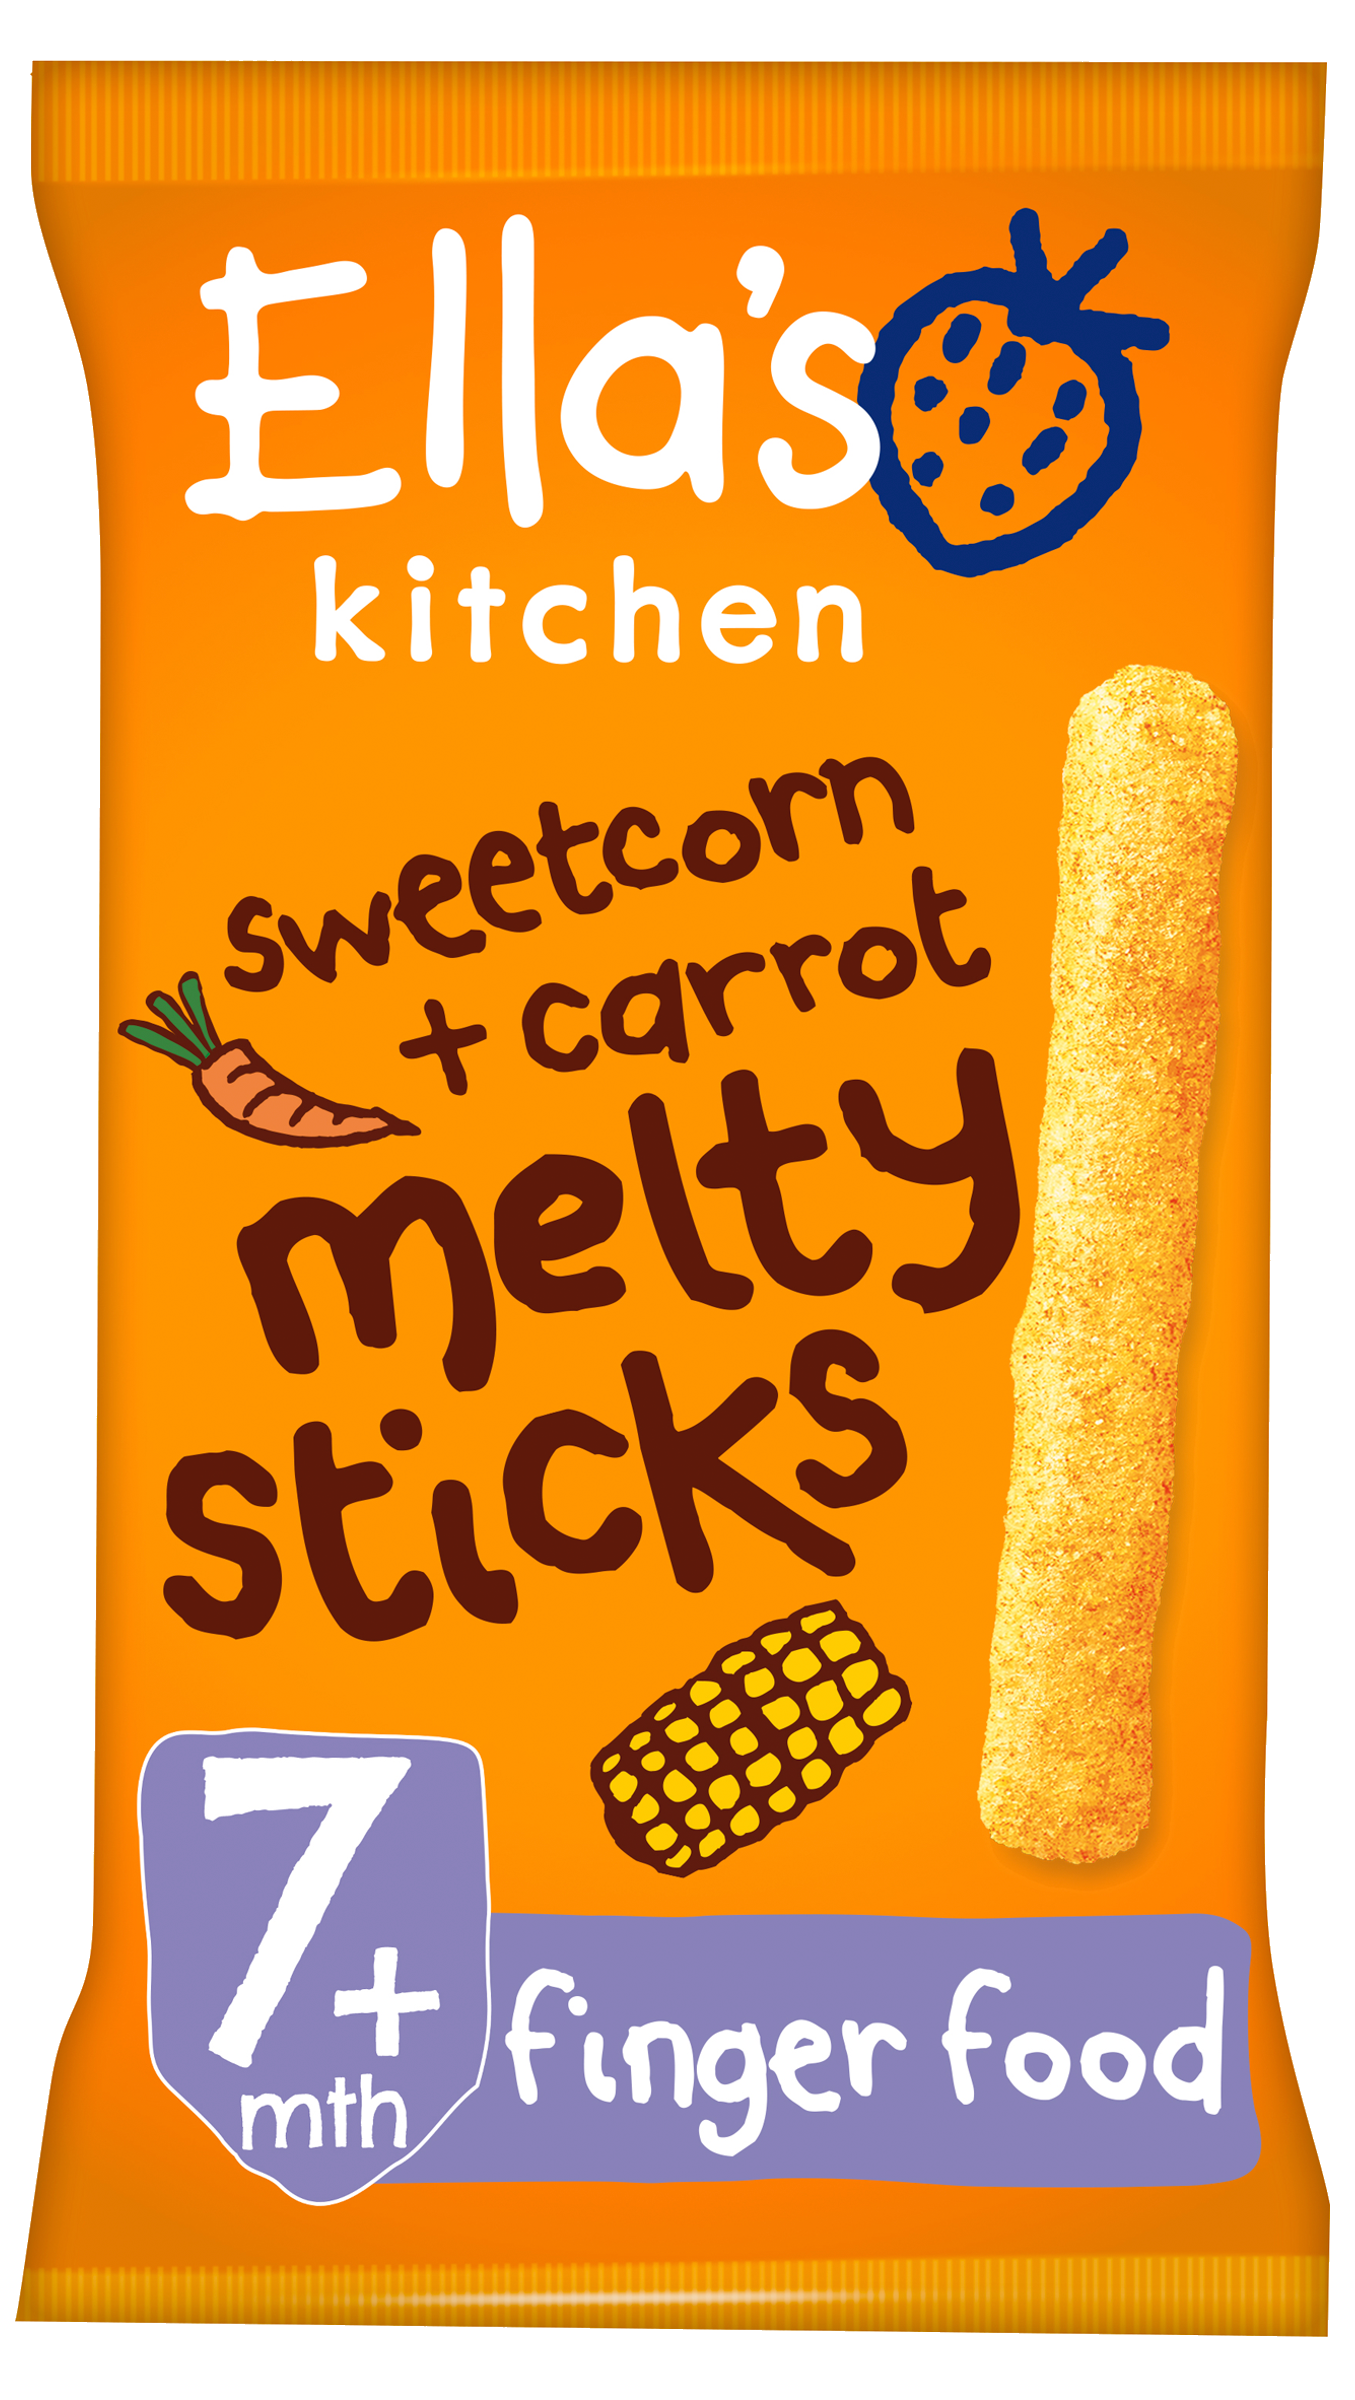 Ellas kitchen melty sticks sweetcorn carrot bag front of pack O